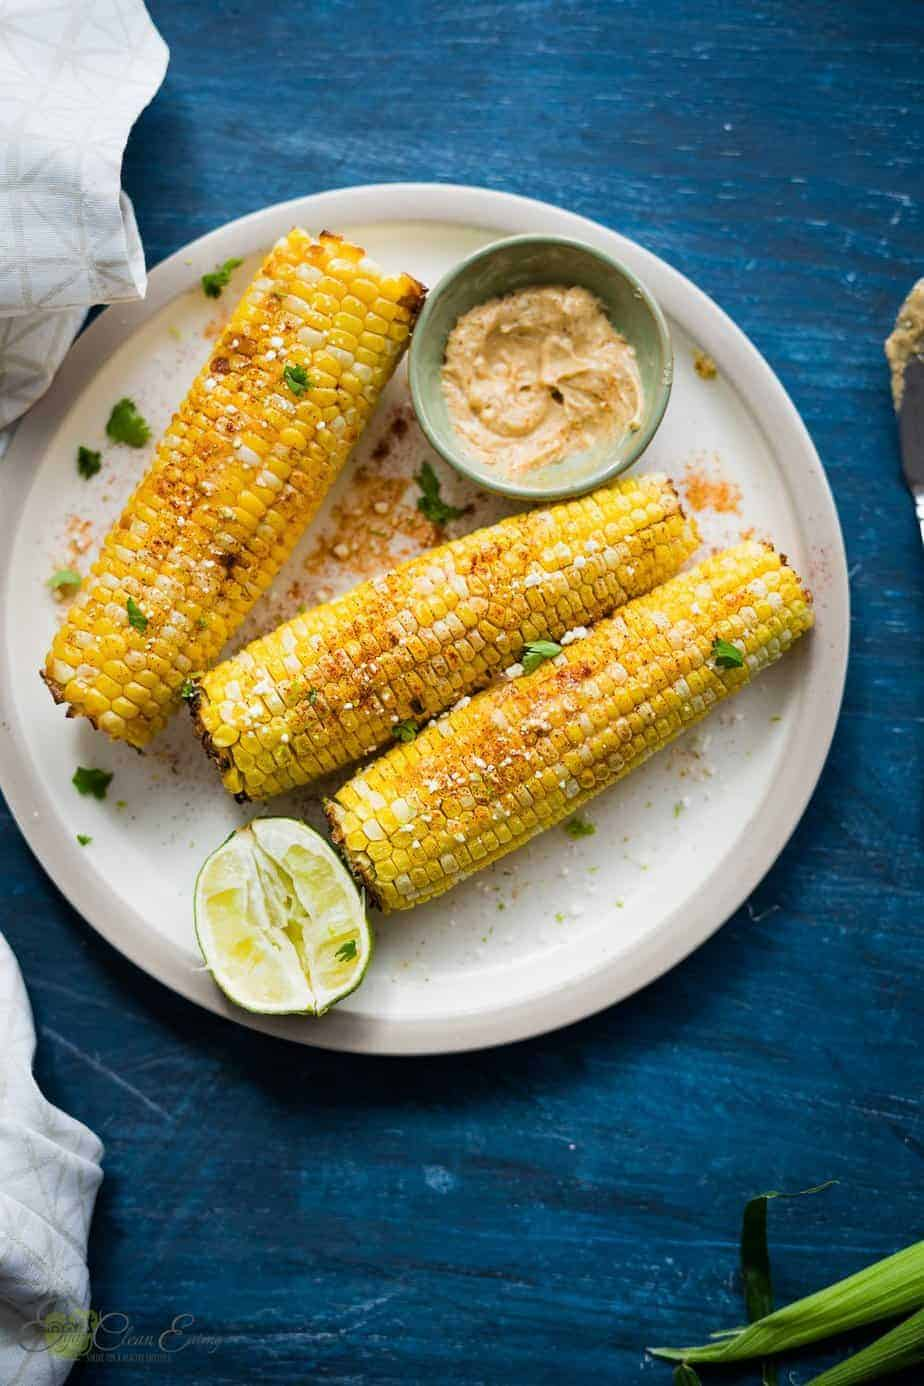 roasted corn on the cob served with chili lime butter, lime wedges, sprinkle with goat cheese, paprika and fresh cilantro.